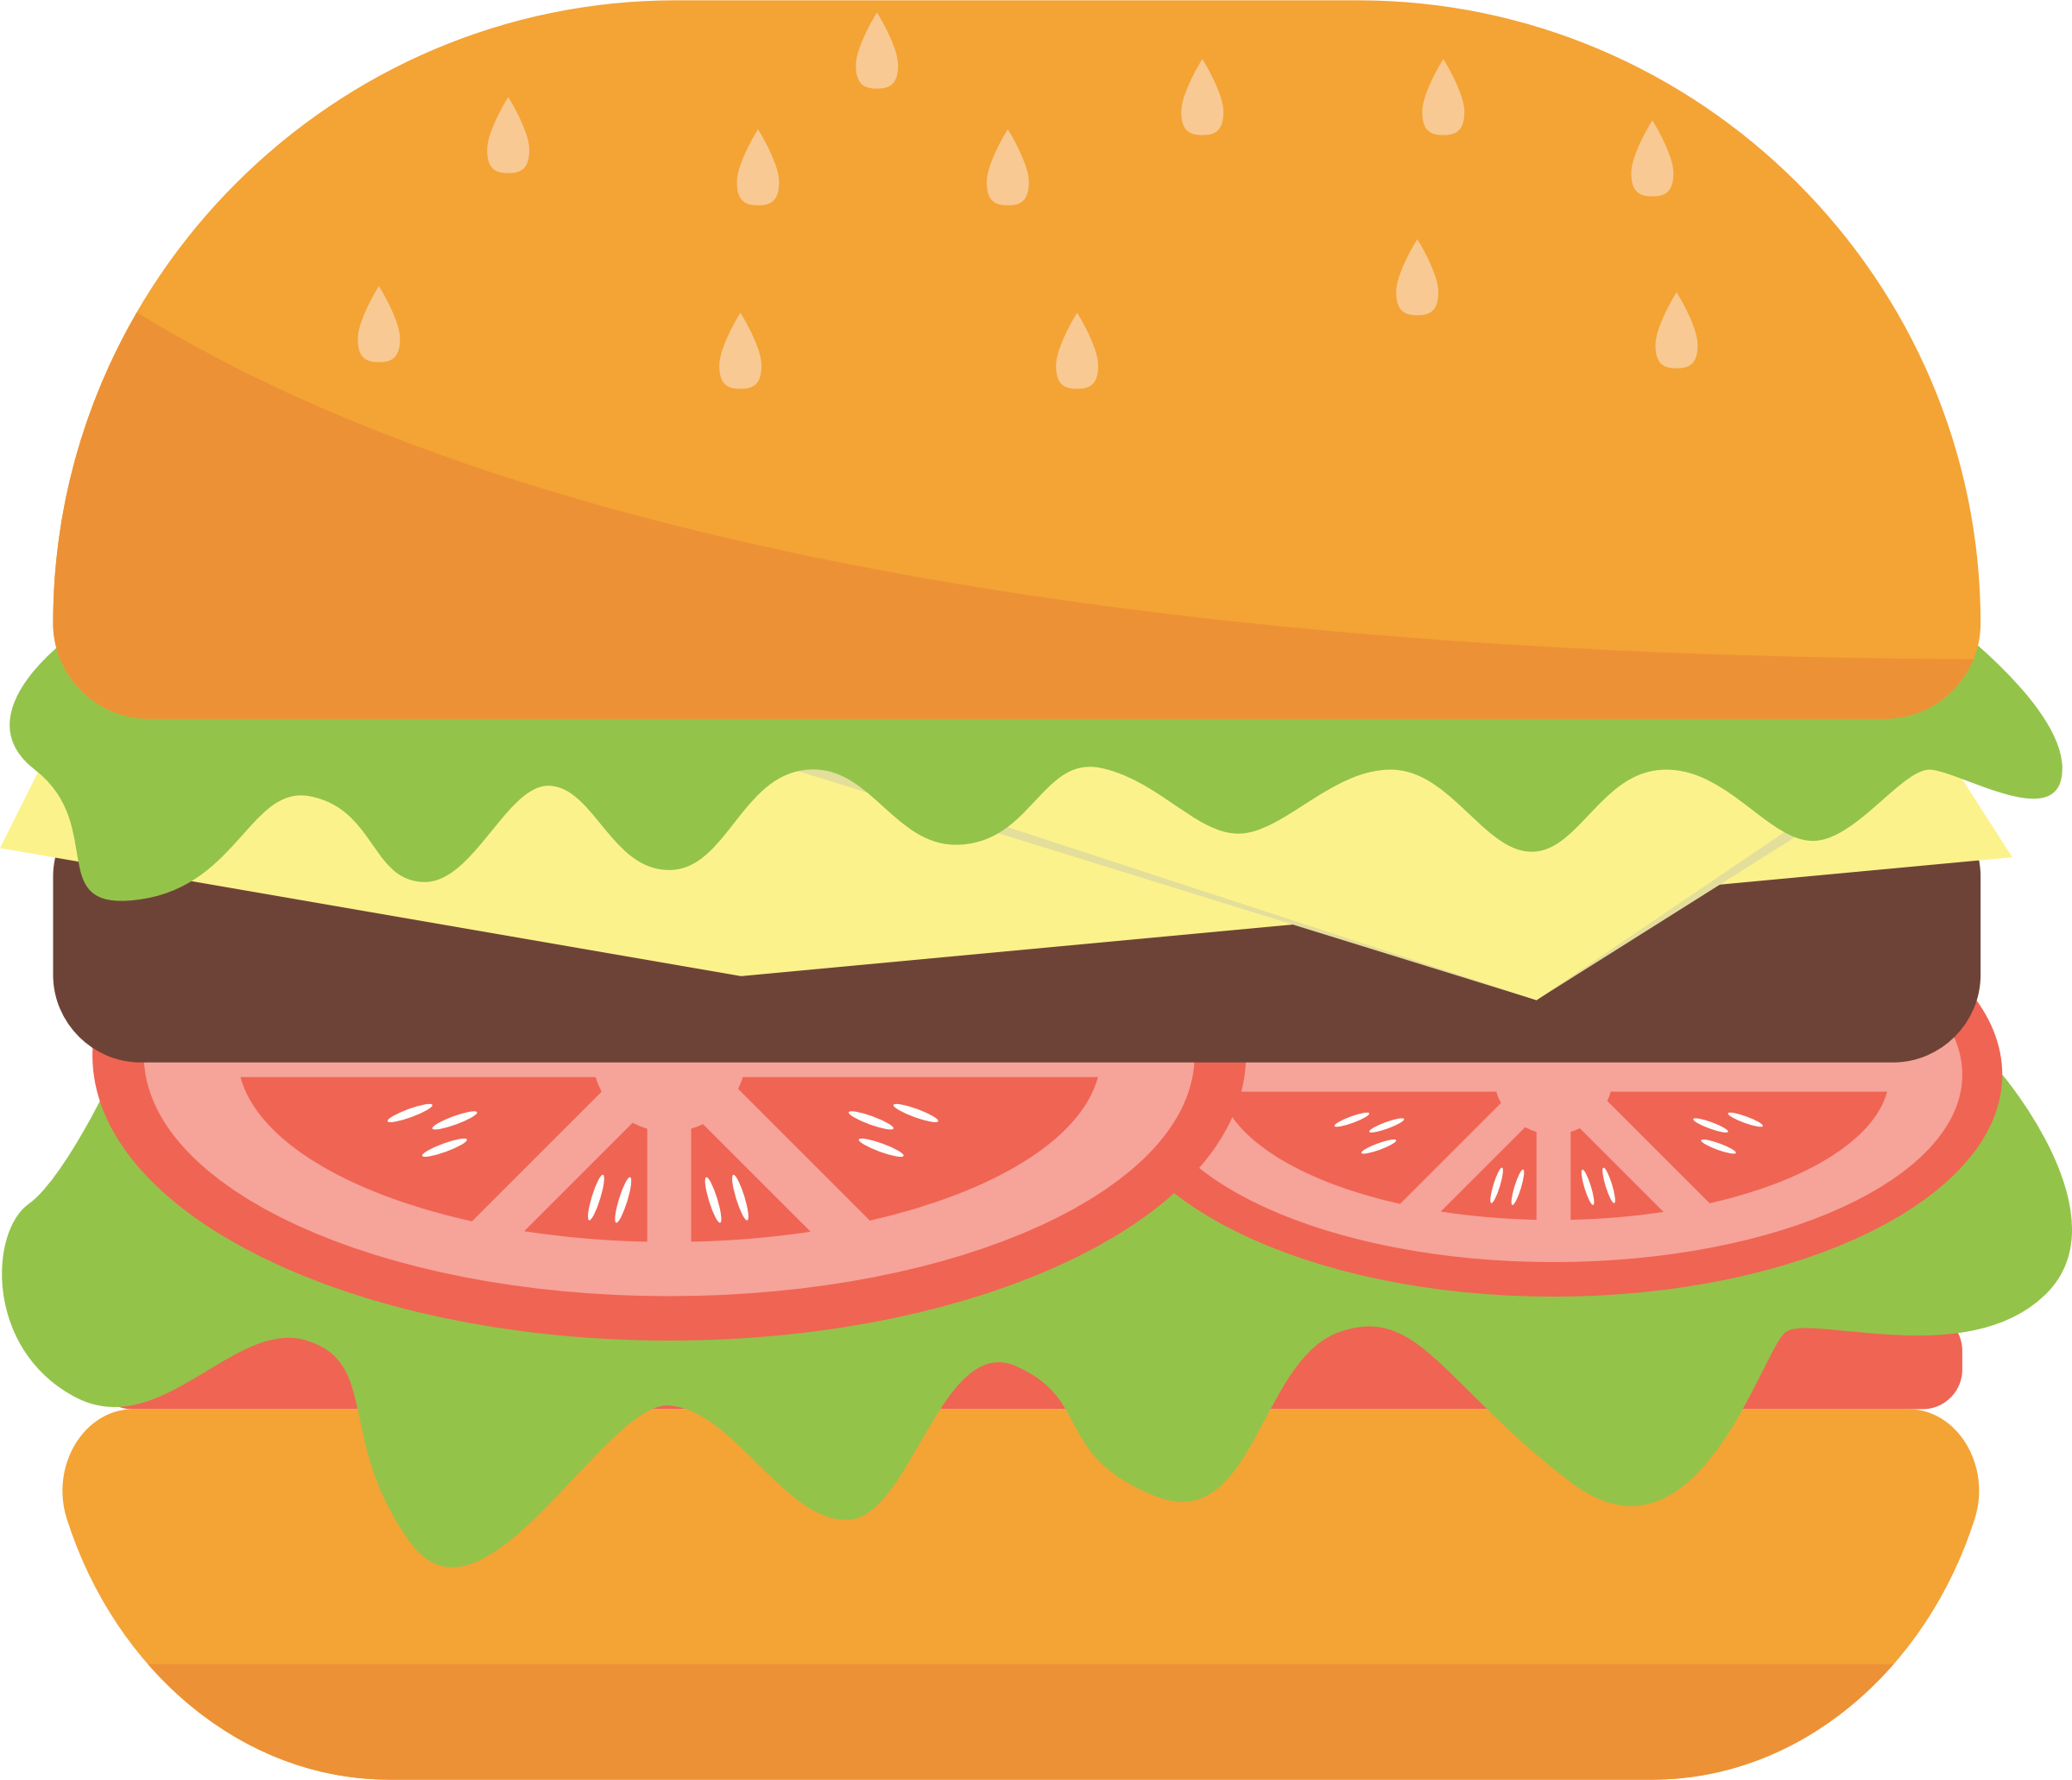 banner royalty free stock Big image png. Hamburger clipart hambuger